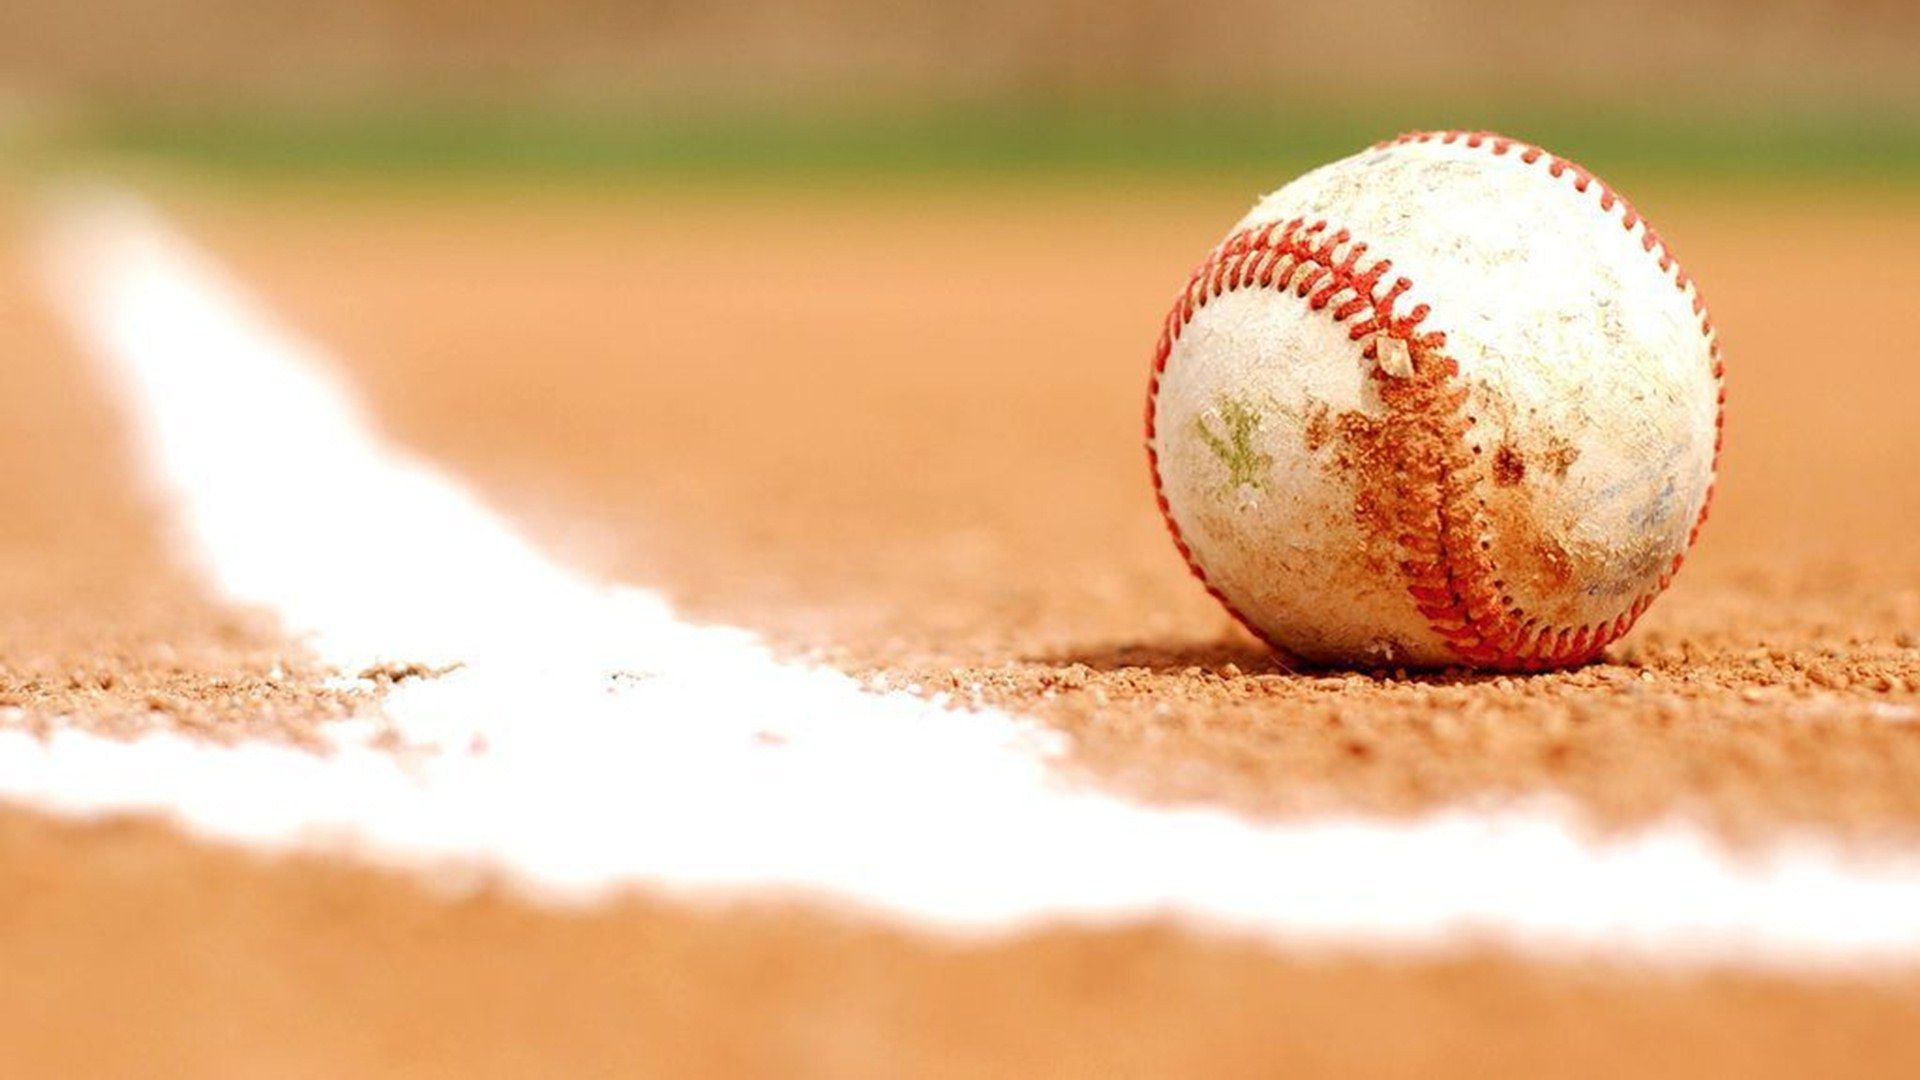 Baseball HD Wallpaper Wallpapers And Backgrounds